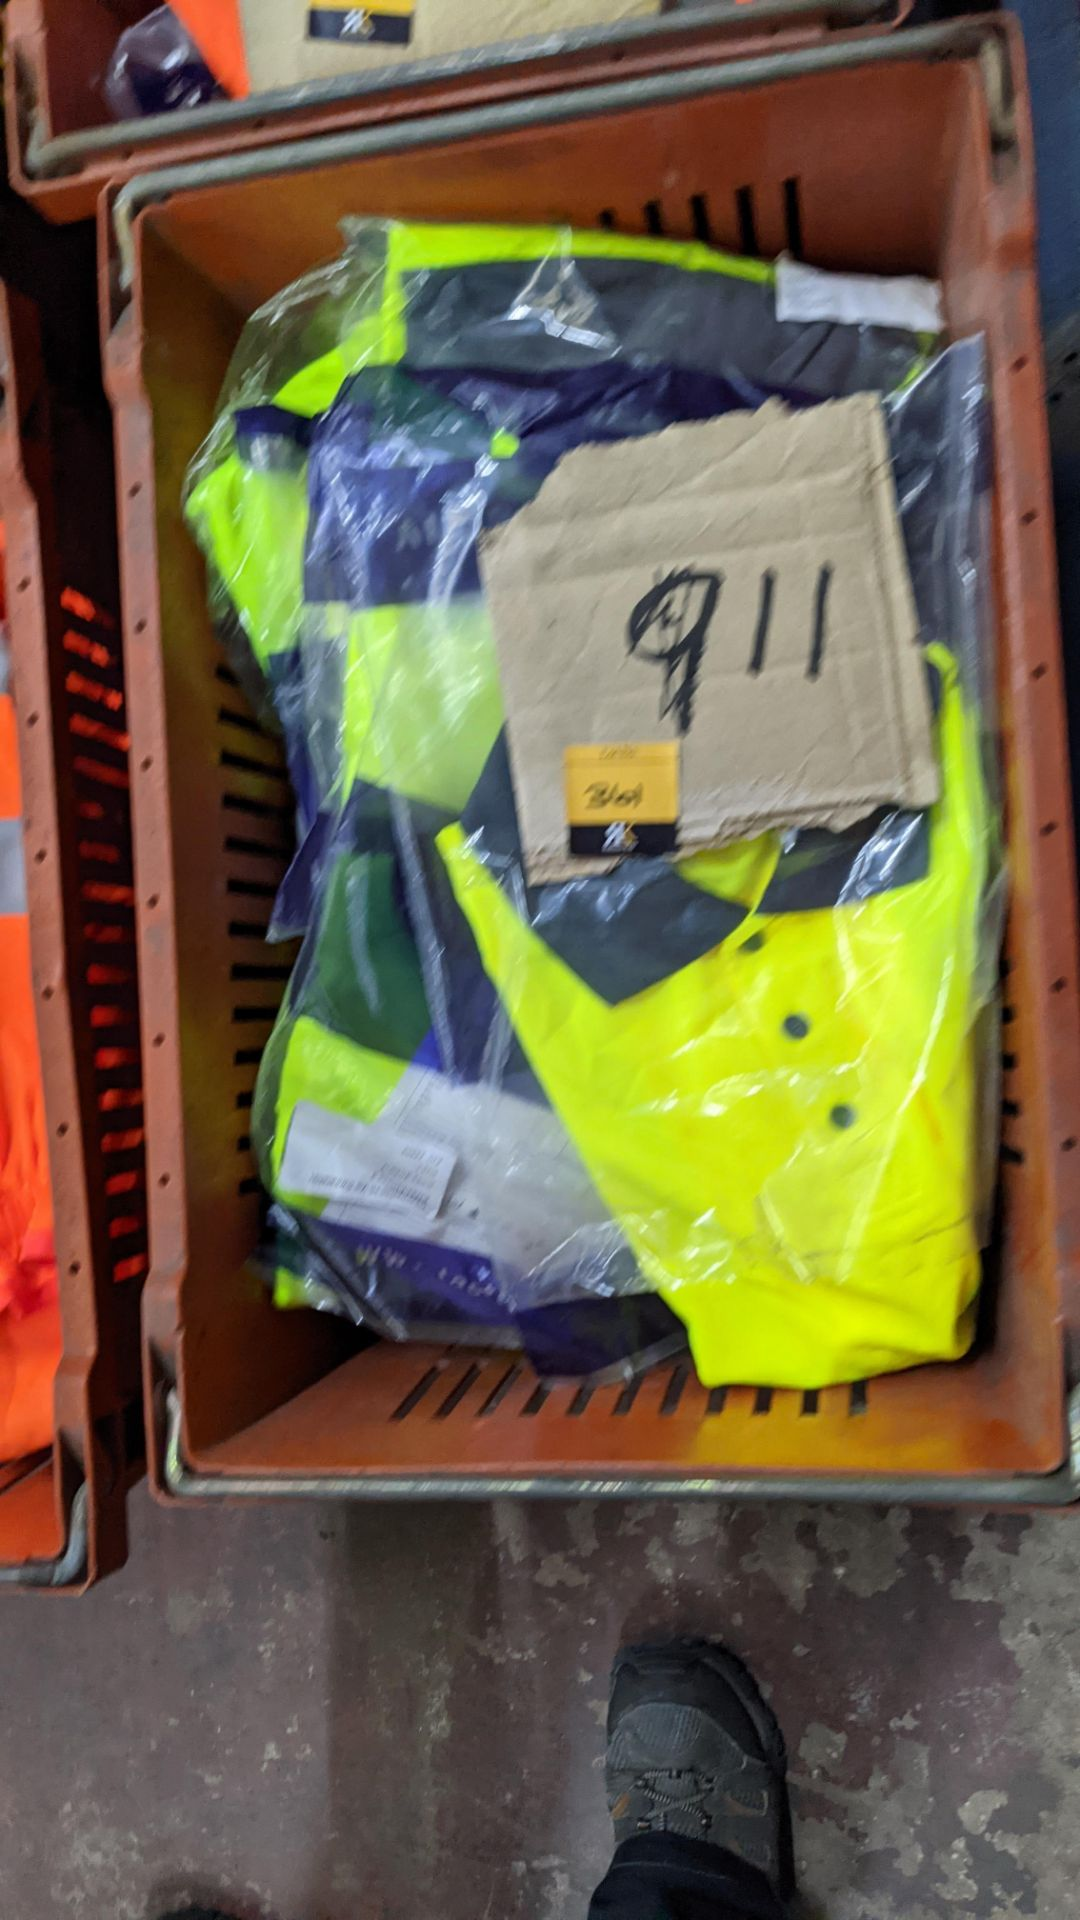 11 off hi-vis polo shirts (yellow) - Image 4 of 4